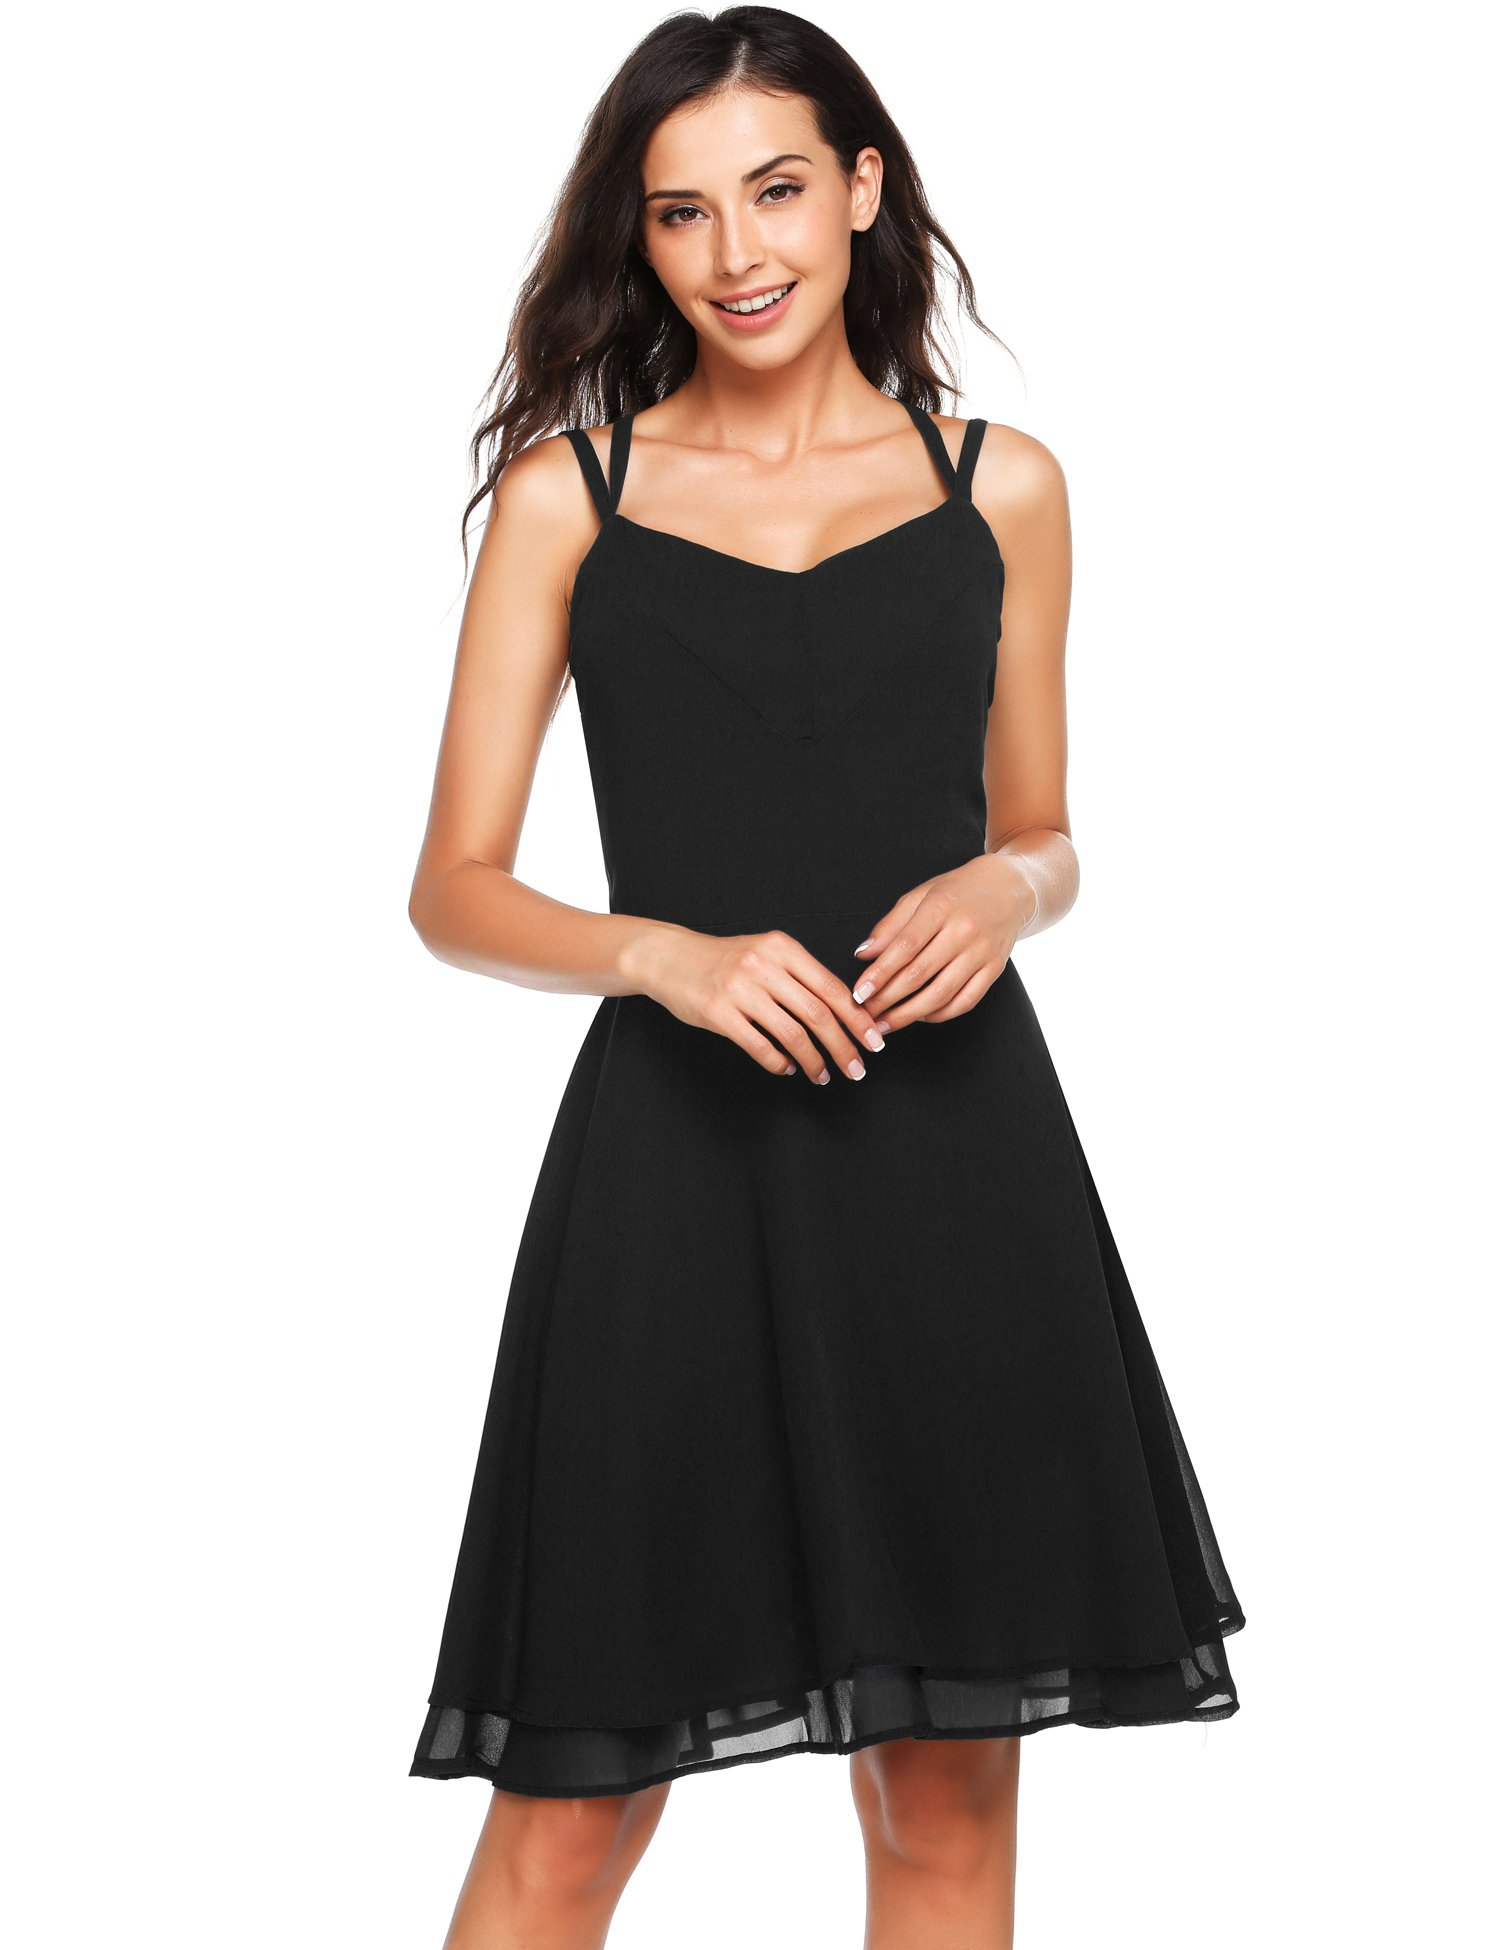 Zeagoo Women's Sexy Sleeveless Spaghetti Strap Backless Swing A-line Cocktail Party Dress